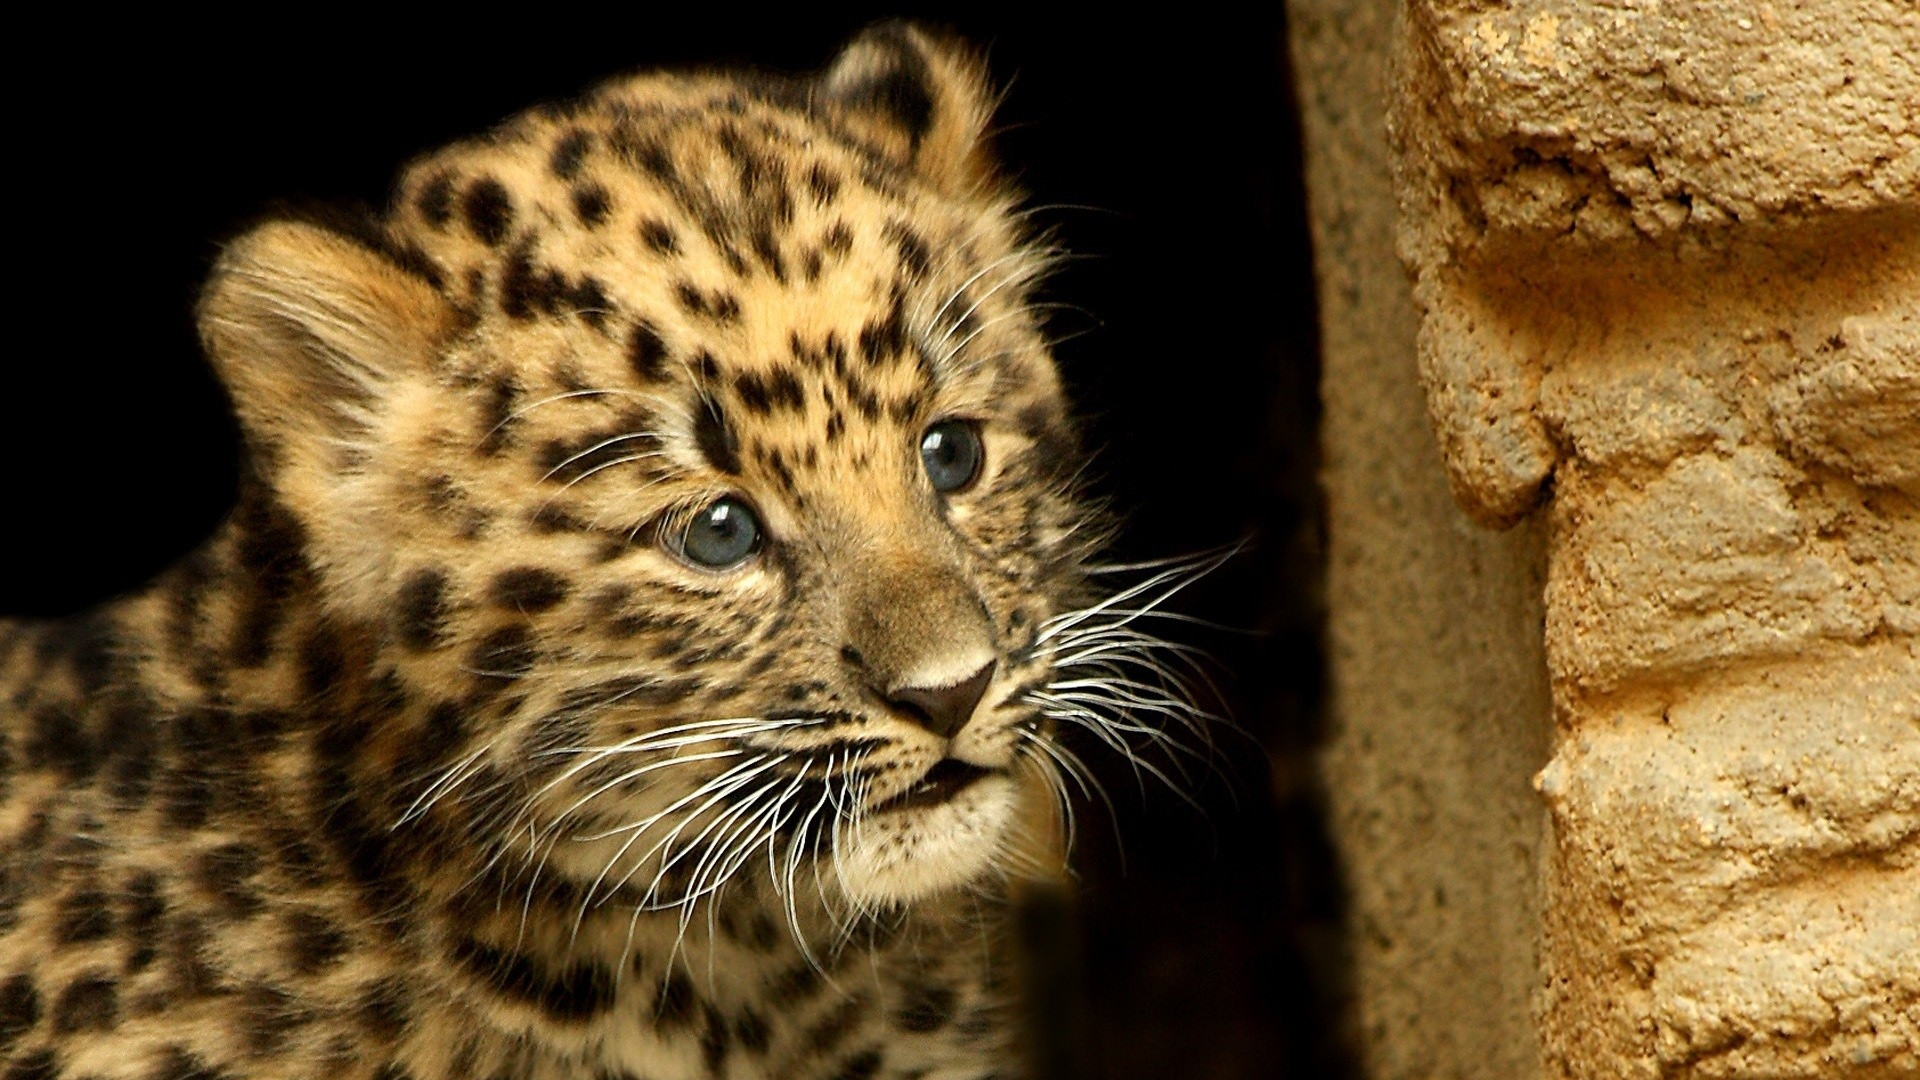 Group of baby cheetah wallpapers android cute cheetah wallpaper collection 70 voltagebd Image collections